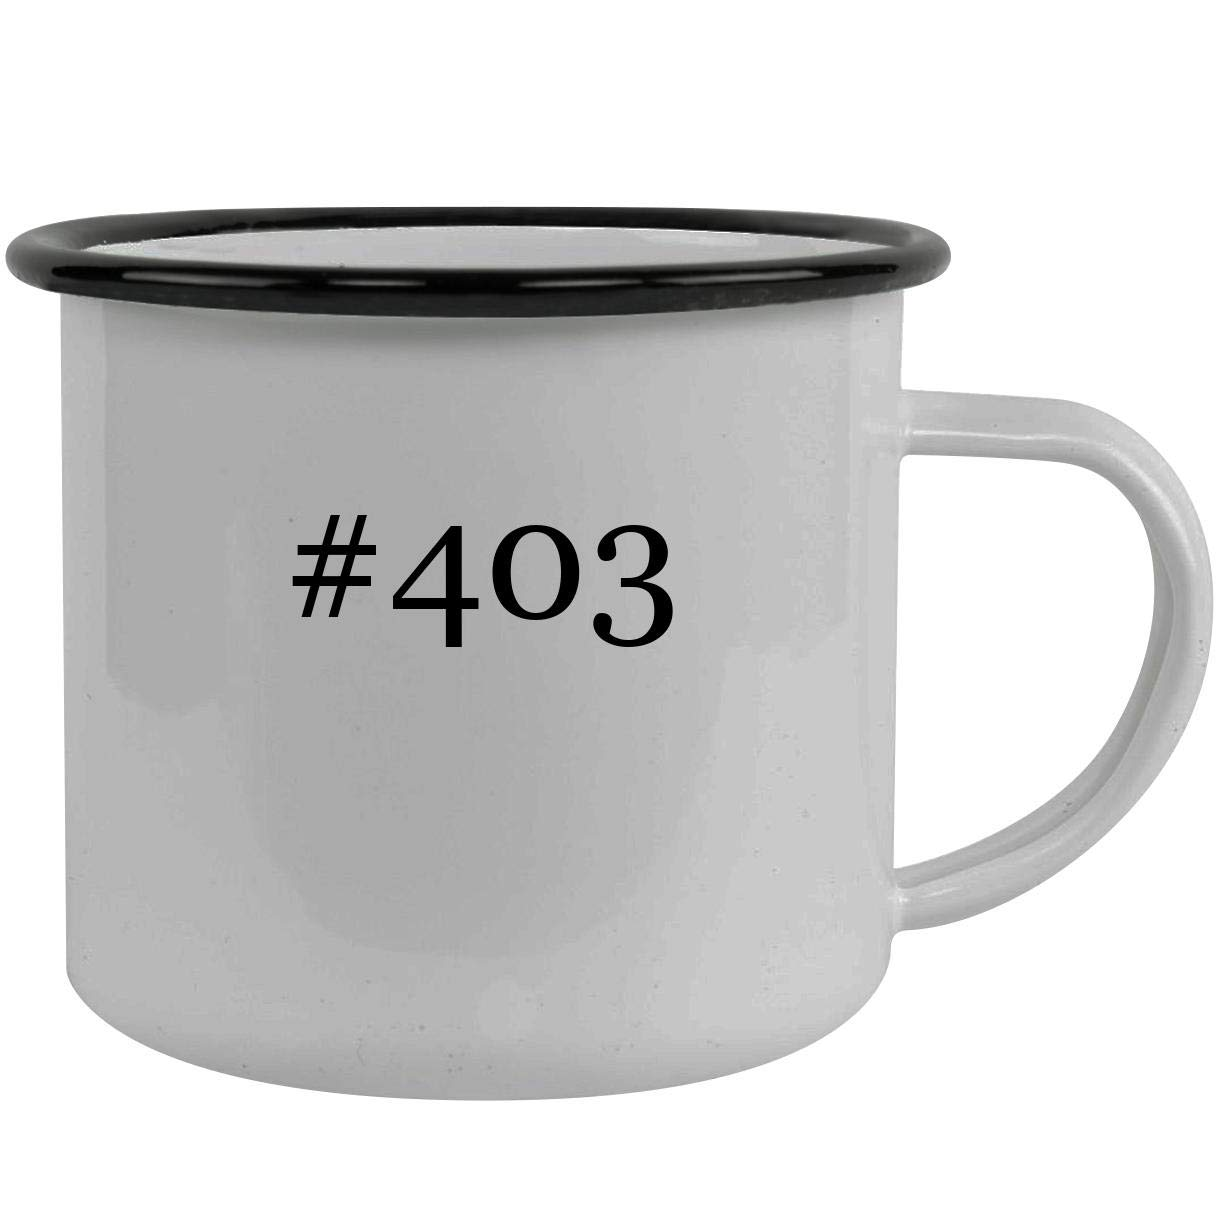 #403 - Stainless Steel Hashtag 12oz Camping Mug